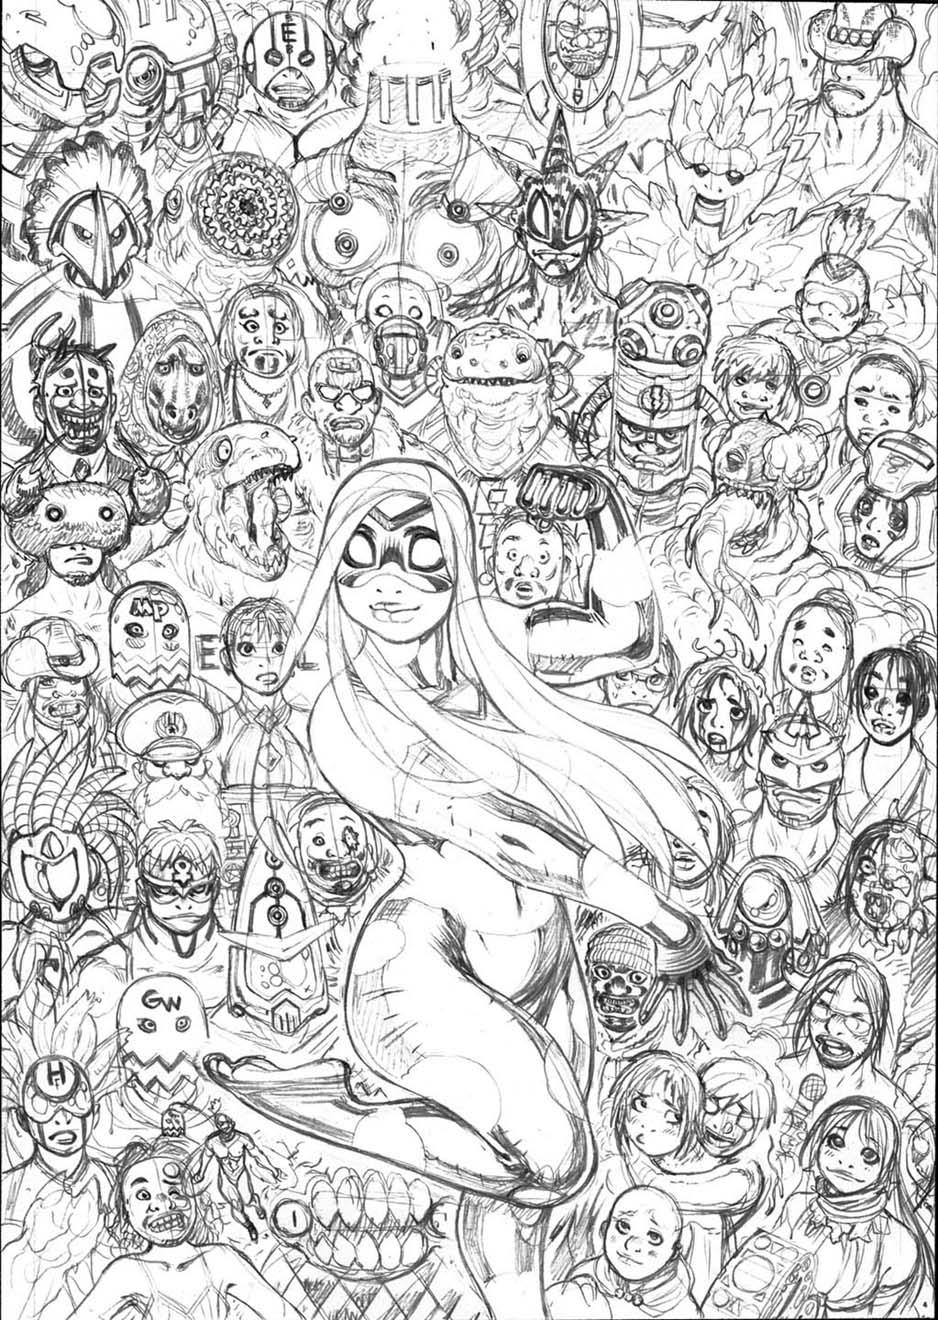 Cover pencils for EMPOWERED DELUXE vol.3 by AdamWarren